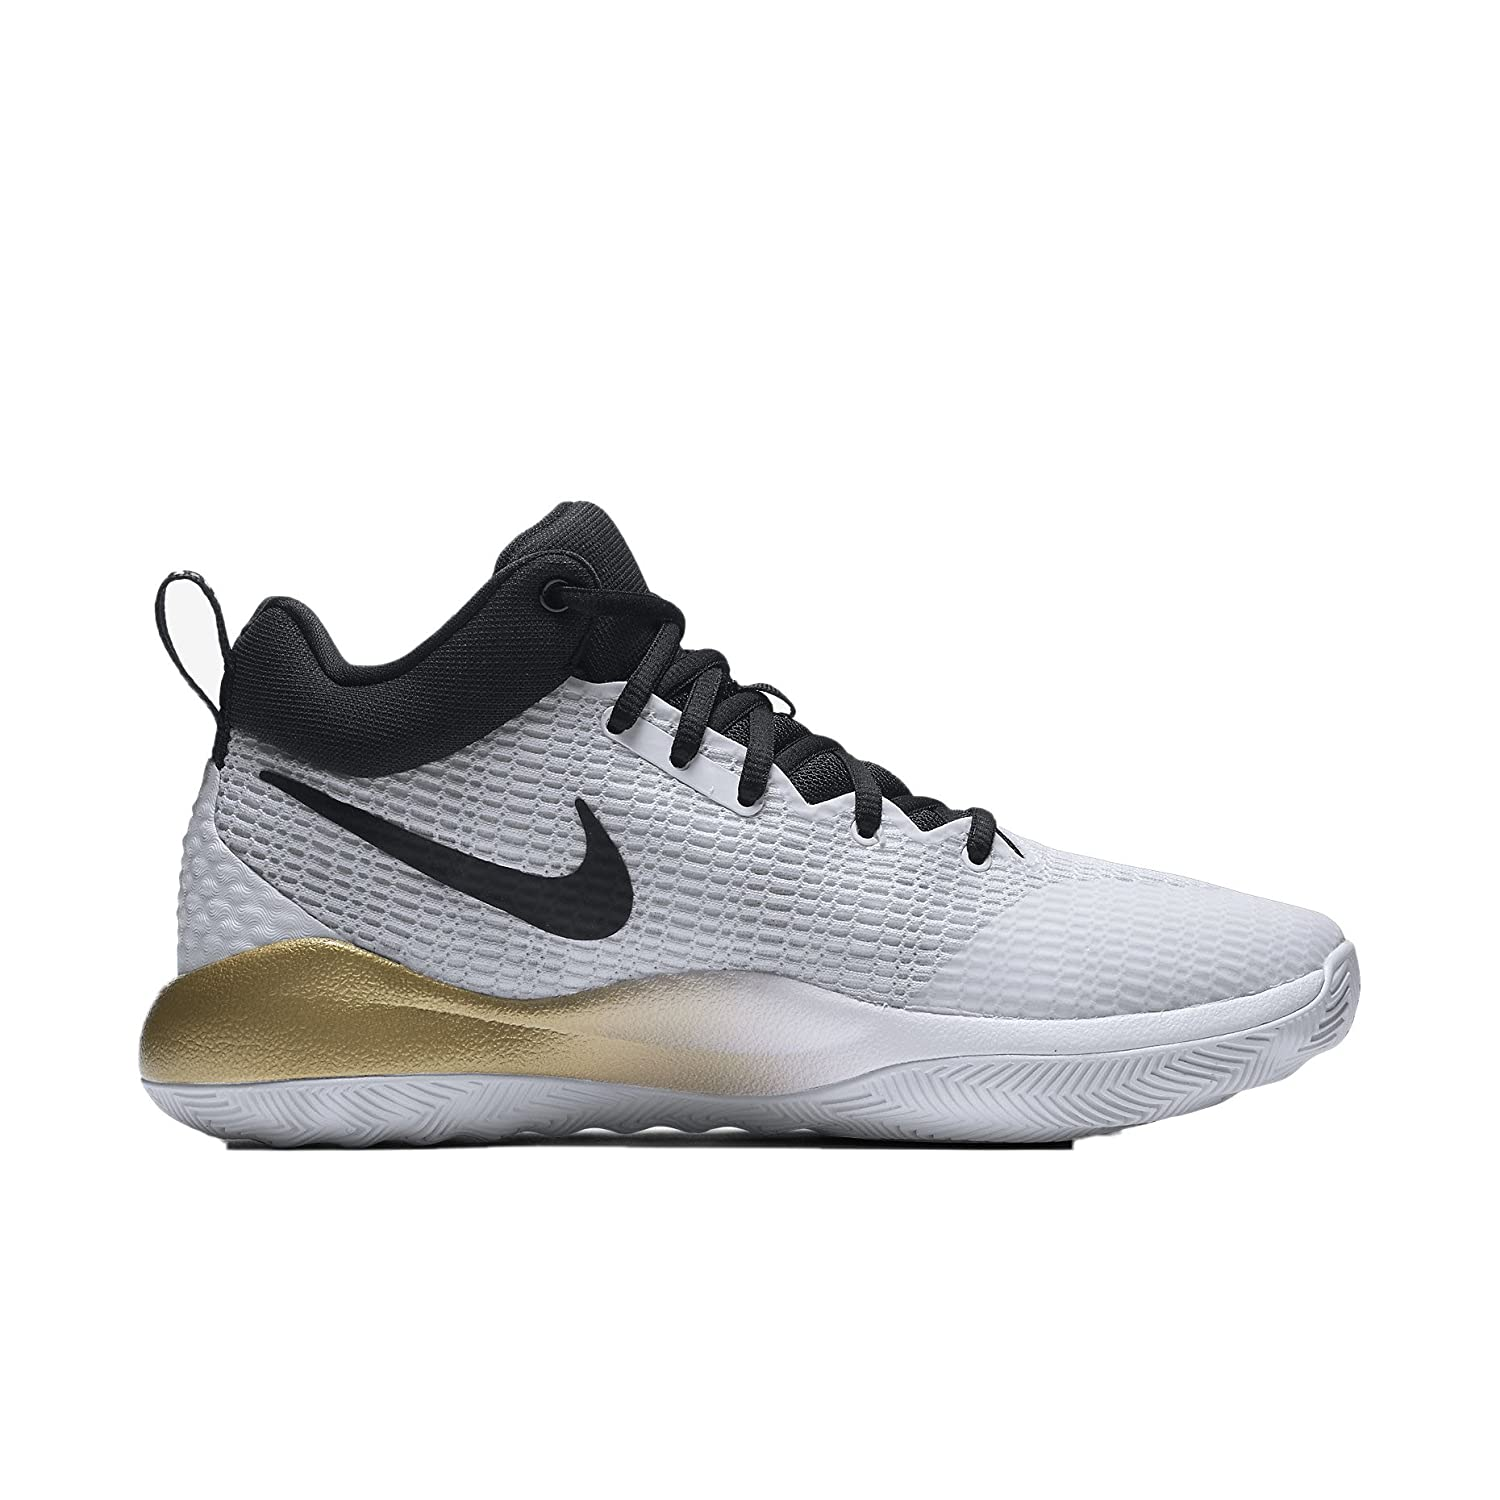 341e05c4d800 Nike Men s Zoom Rev Basketball Shoe White Black Metallic Gold Pure Platinum  Size 10 M US  Buy Online at Low Prices in India - Amazon.in